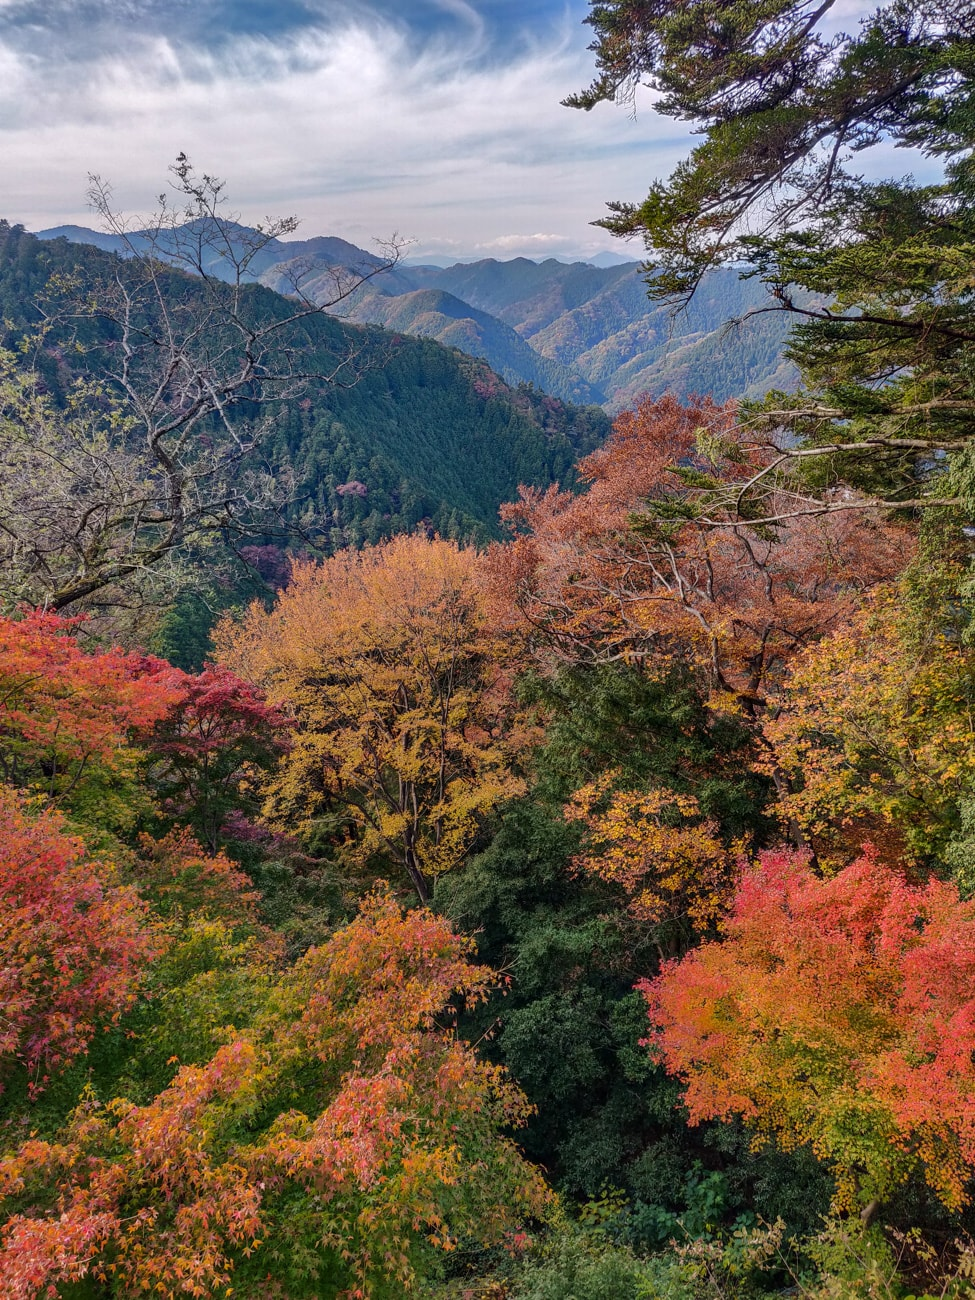 Mt. Takao in Autumn, colorful leaves and trees, mountain landscape.